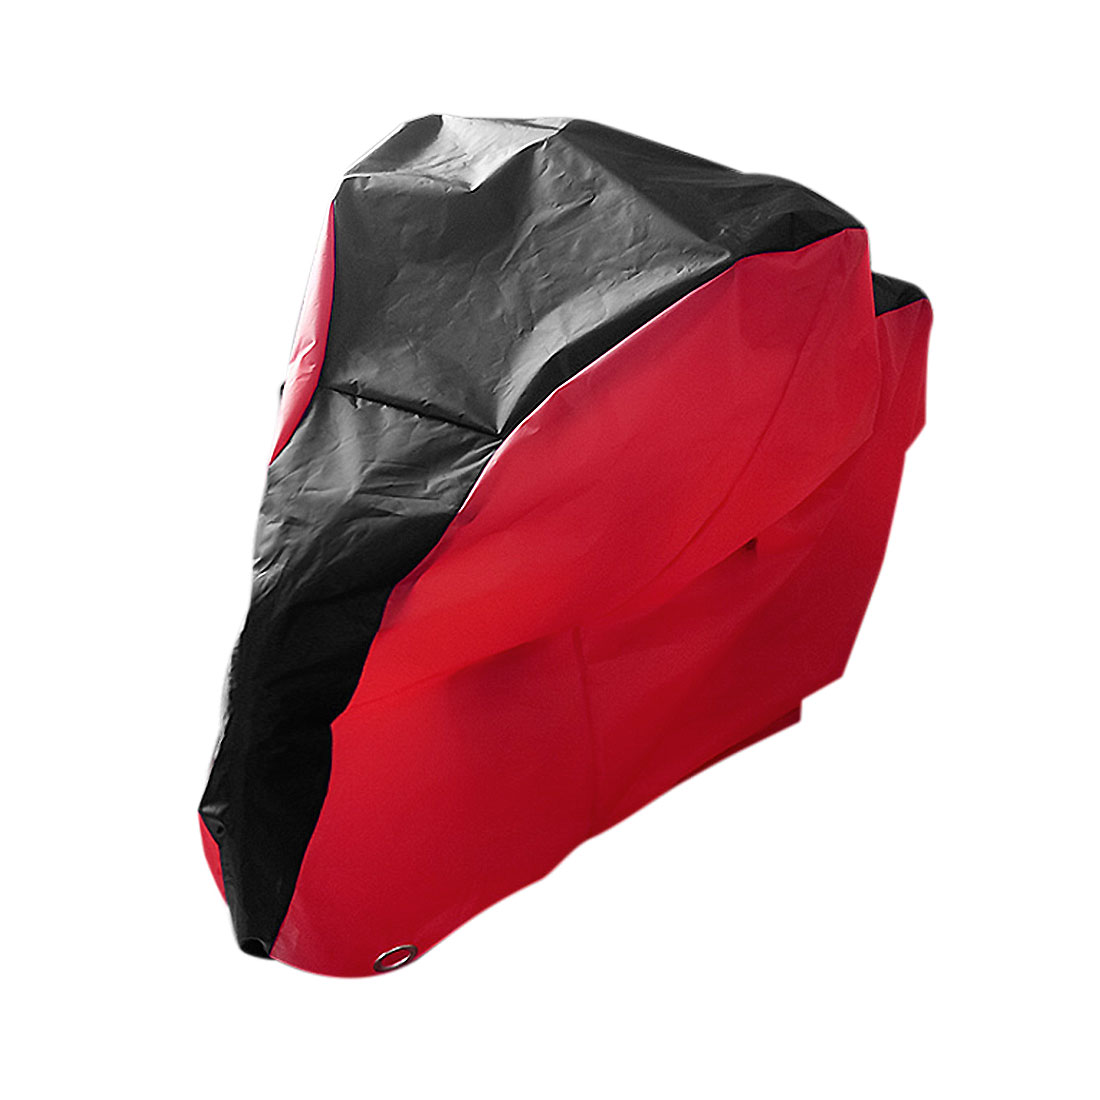 L Red Waterproof Rain UV Dust Resistant Protective Cover for Bike Bicycle